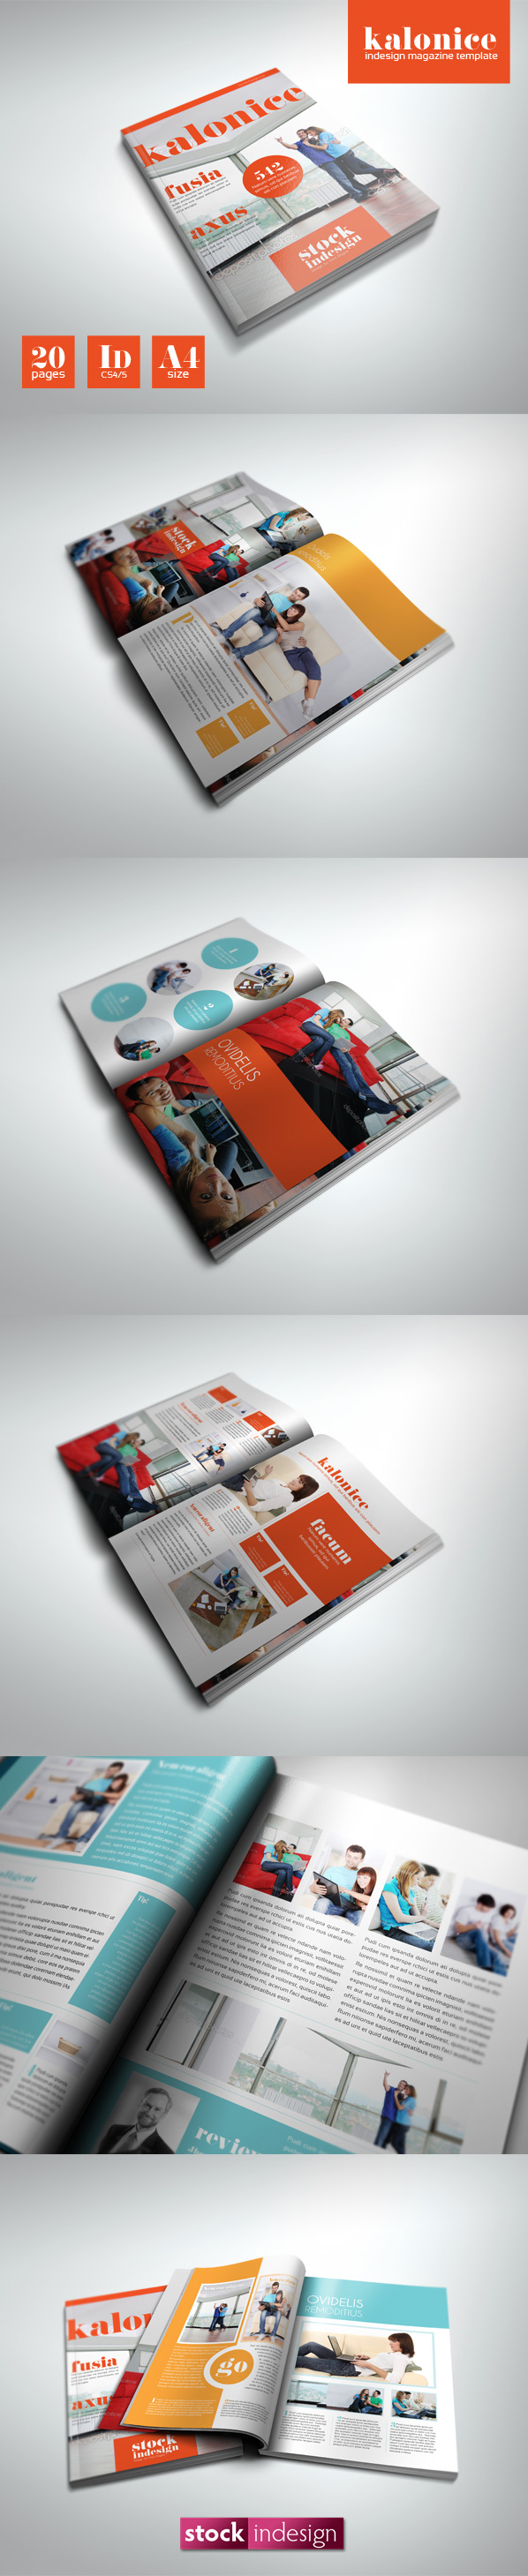 InDesign PRO Magazine Template: Kalonice | Indesign | Pinterest